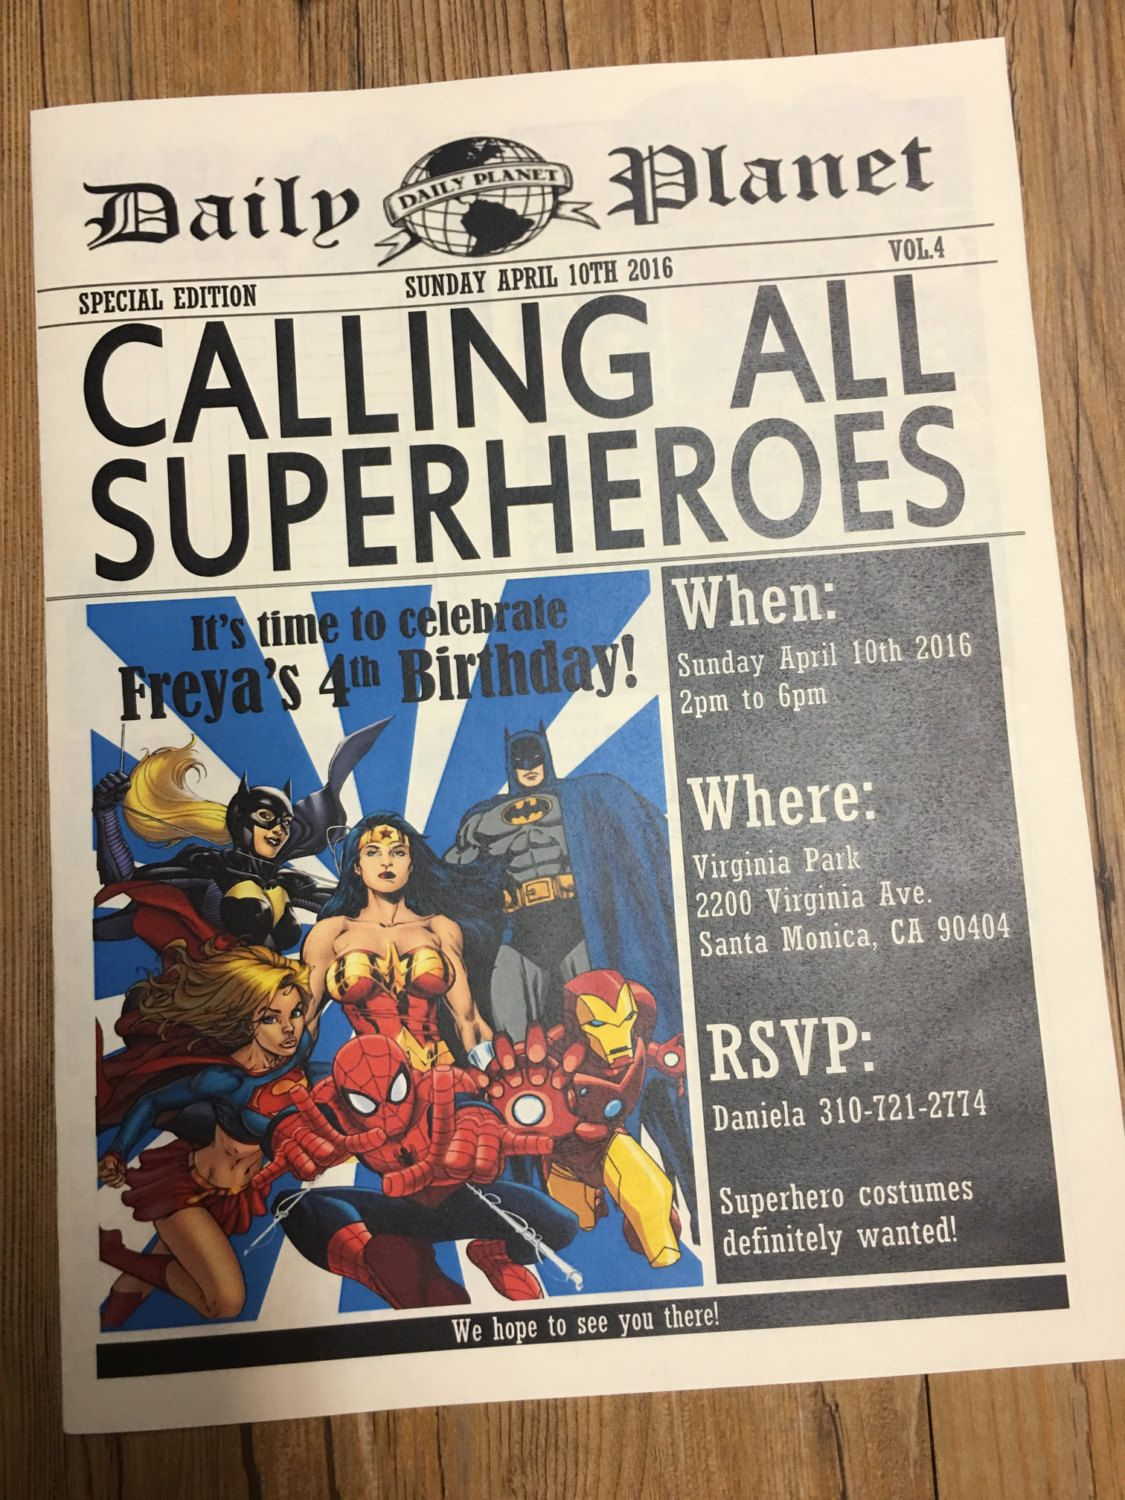 002 Archaicawful Superhero Newspaper Invitation Template Free Highest Quality Full